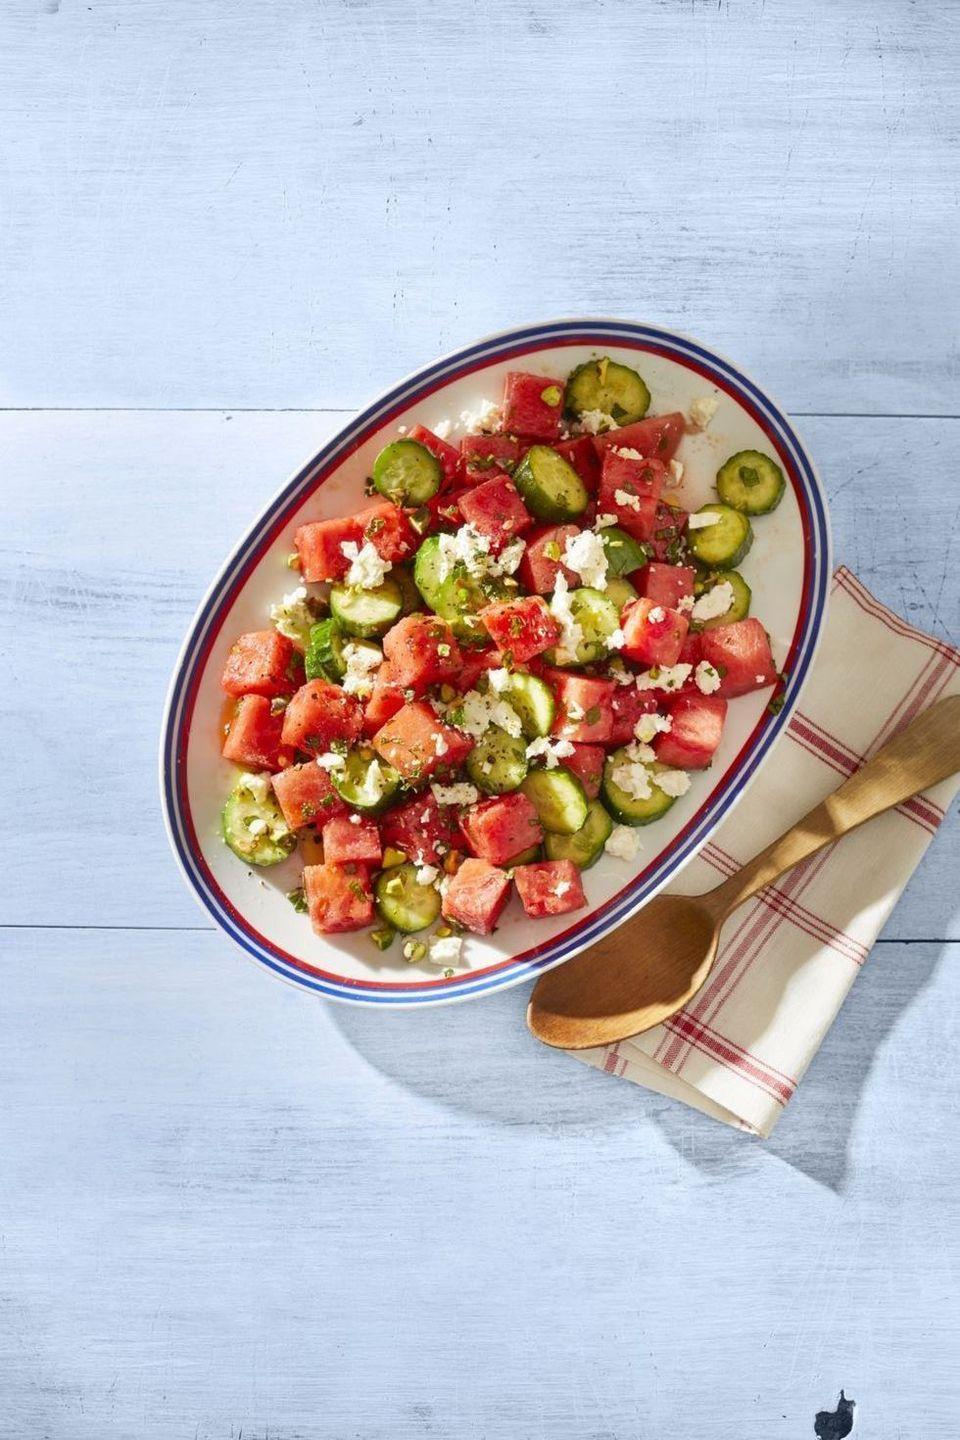 """<p>There are few things you'll want more on a hot July day than a cool, refreshing salad. This one fits the bill beautifully.</p><p><strong><a href=""""https://www.thepioneerwoman.com/food-cooking/recipes/a32345604/watermelon-salad-with-feta-and-mint-recipe/"""" rel=""""nofollow noopener"""" target=""""_blank"""" data-ylk=""""slk:Get the recipe."""" class=""""link rapid-noclick-resp"""">Get the recipe.</a></strong></p><p><a class=""""link rapid-noclick-resp"""" href=""""https://go.redirectingat.com?id=74968X1596630&url=https%3A%2F%2Fwww.walmart.com%2Fip%2FThe-Pioneer-Woman-Vintage-Floral-3-Piece-Serving-Bowl-Set%2F115837521&sref=https%3A%2F%2Fwww.thepioneerwoman.com%2Ffood-cooking%2Fmeals-menus%2Fg32157273%2Ffourth-of-july-appetizers%2F"""" rel=""""nofollow noopener"""" target=""""_blank"""" data-ylk=""""slk:SHOP SERVING BOWLS"""">SHOP SERVING BOWLS</a><strong><br></strong></p>"""